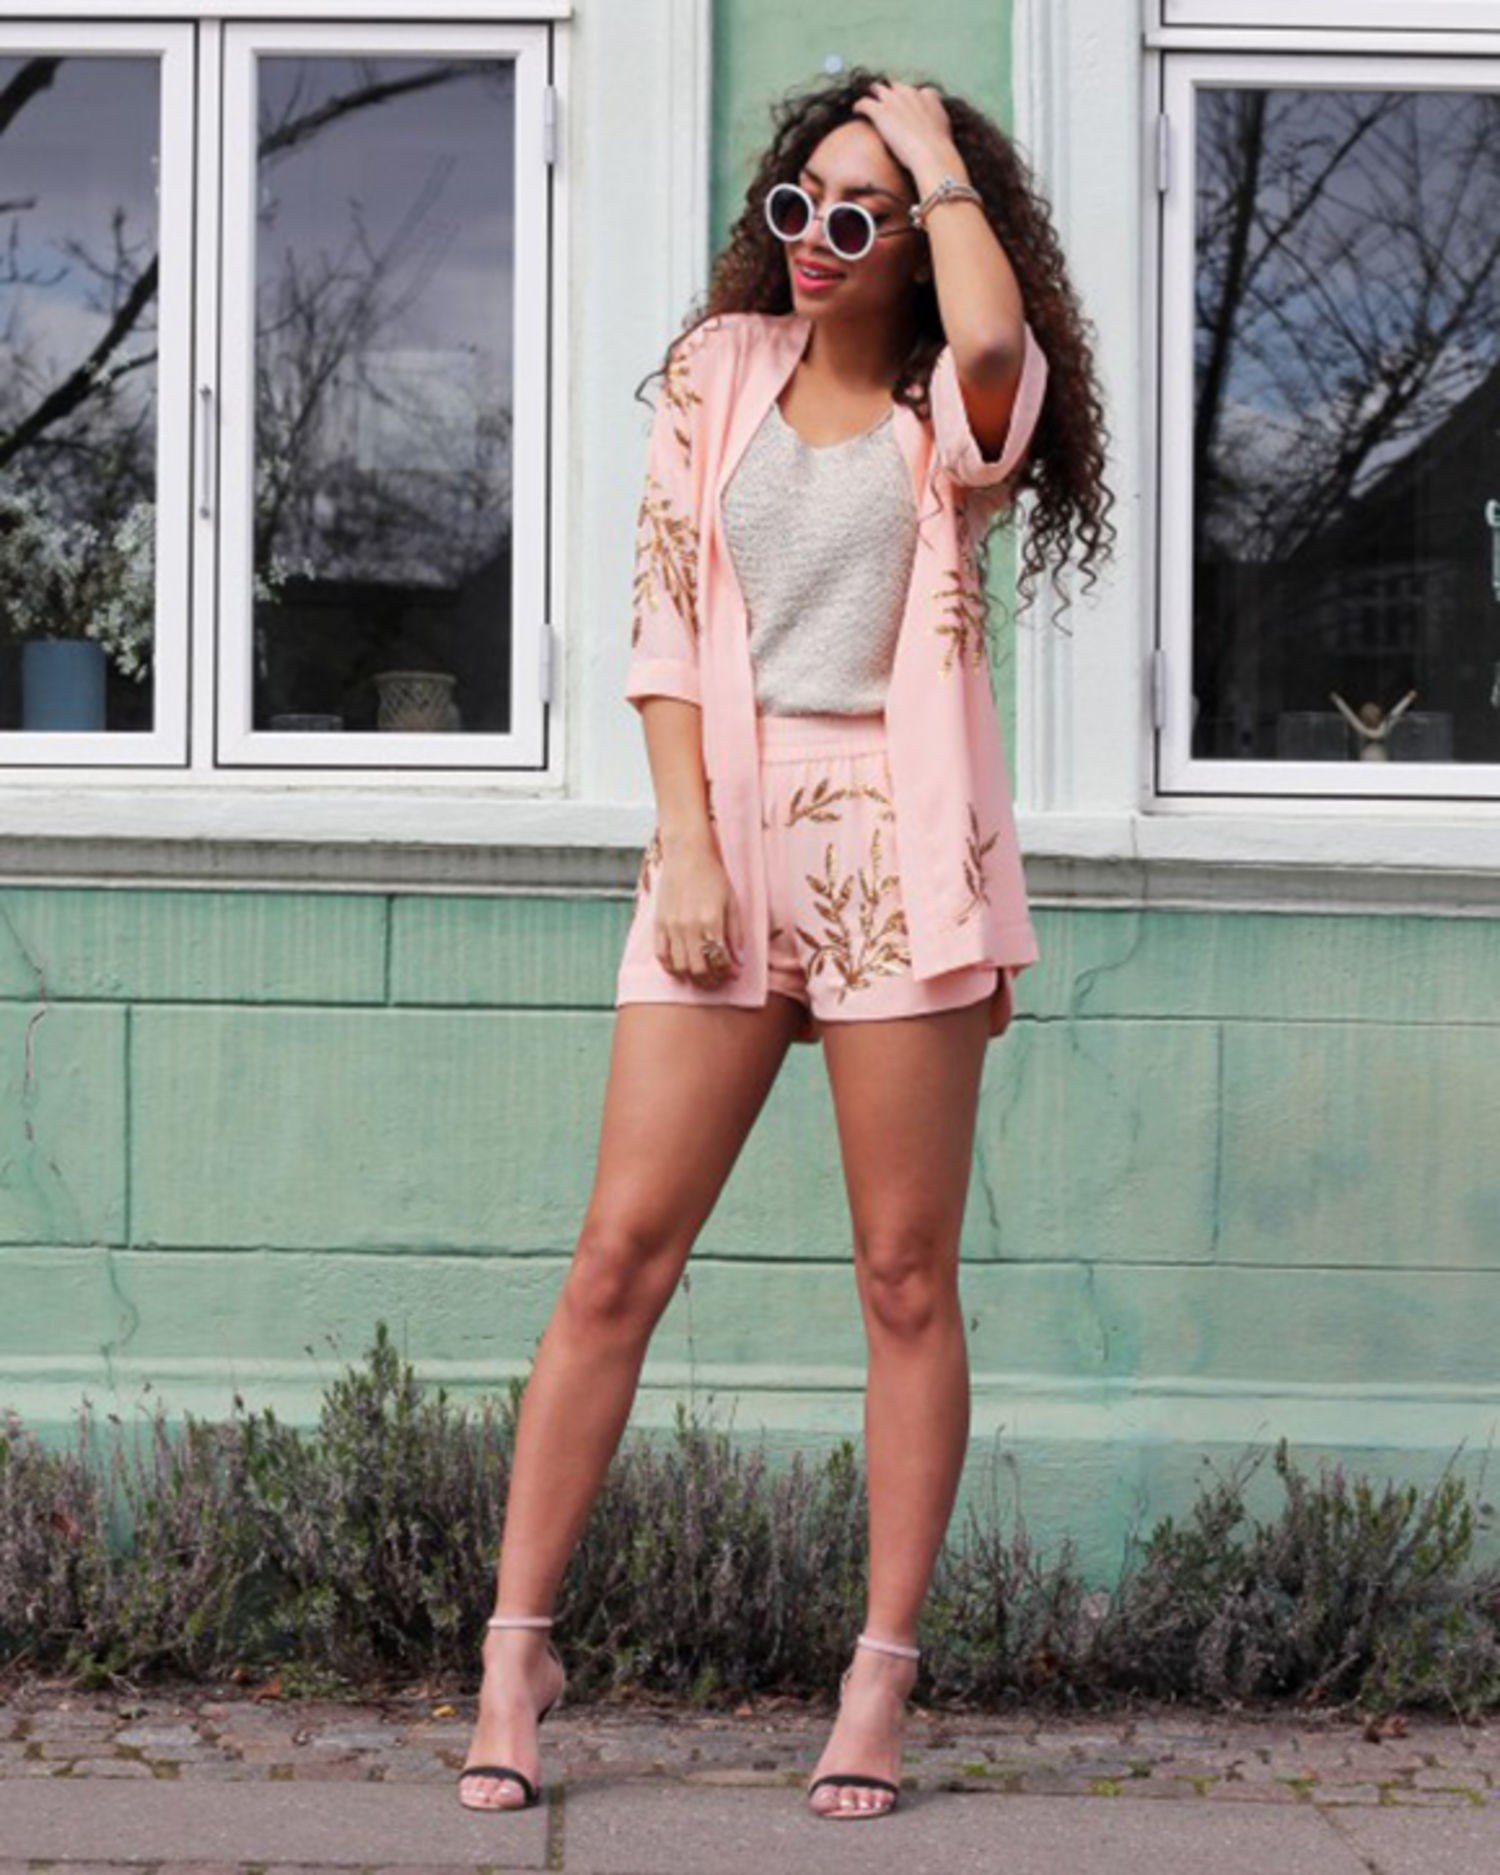 summer outfits 53 cute summer outfit ideas | glamour xrvehoc